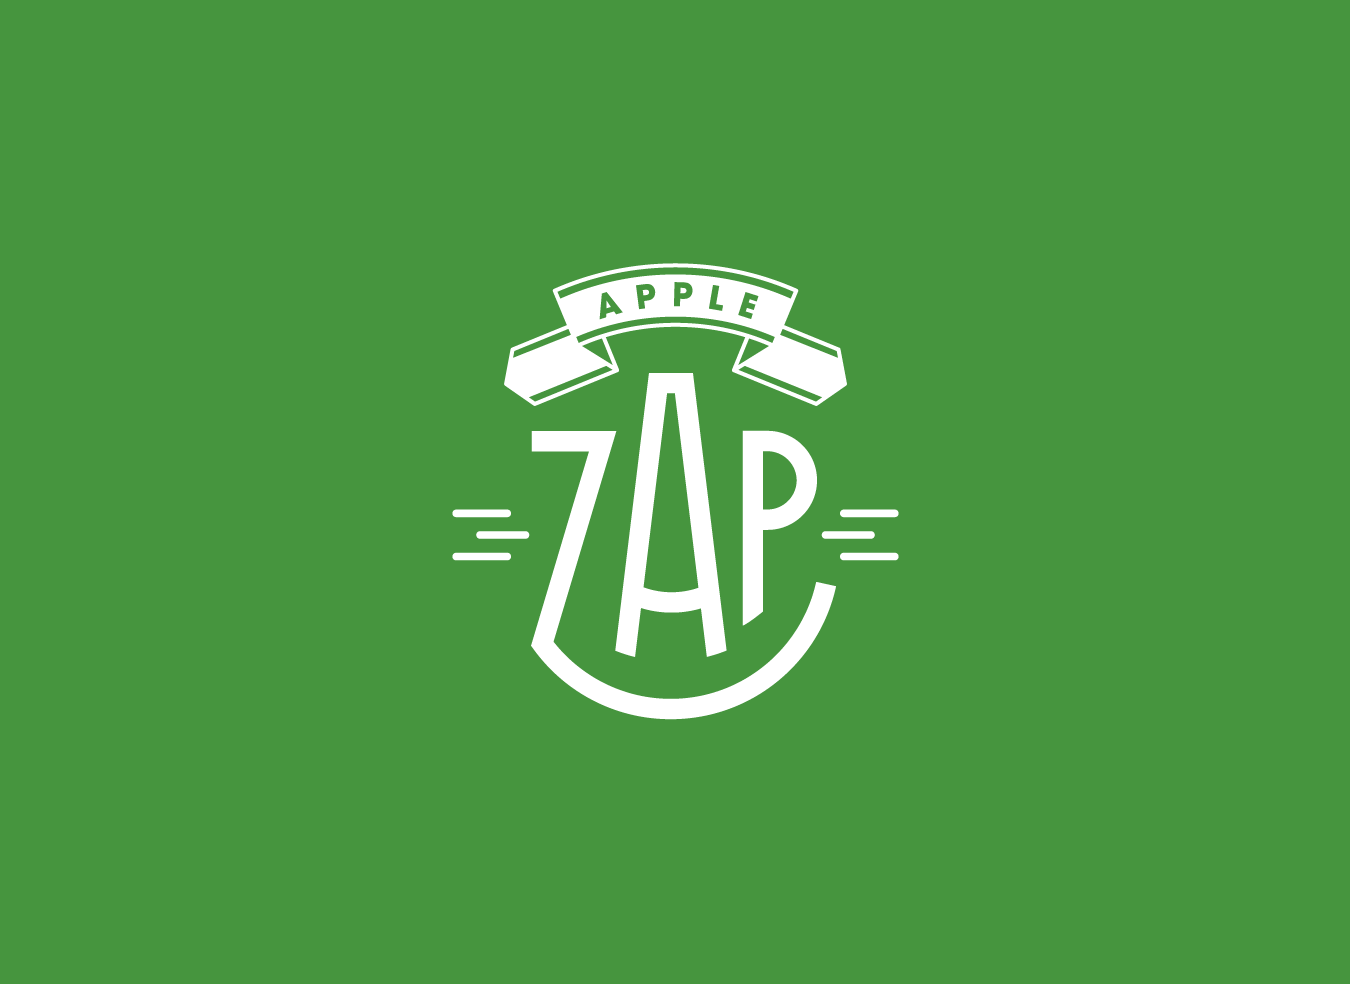 Apple Zap logo